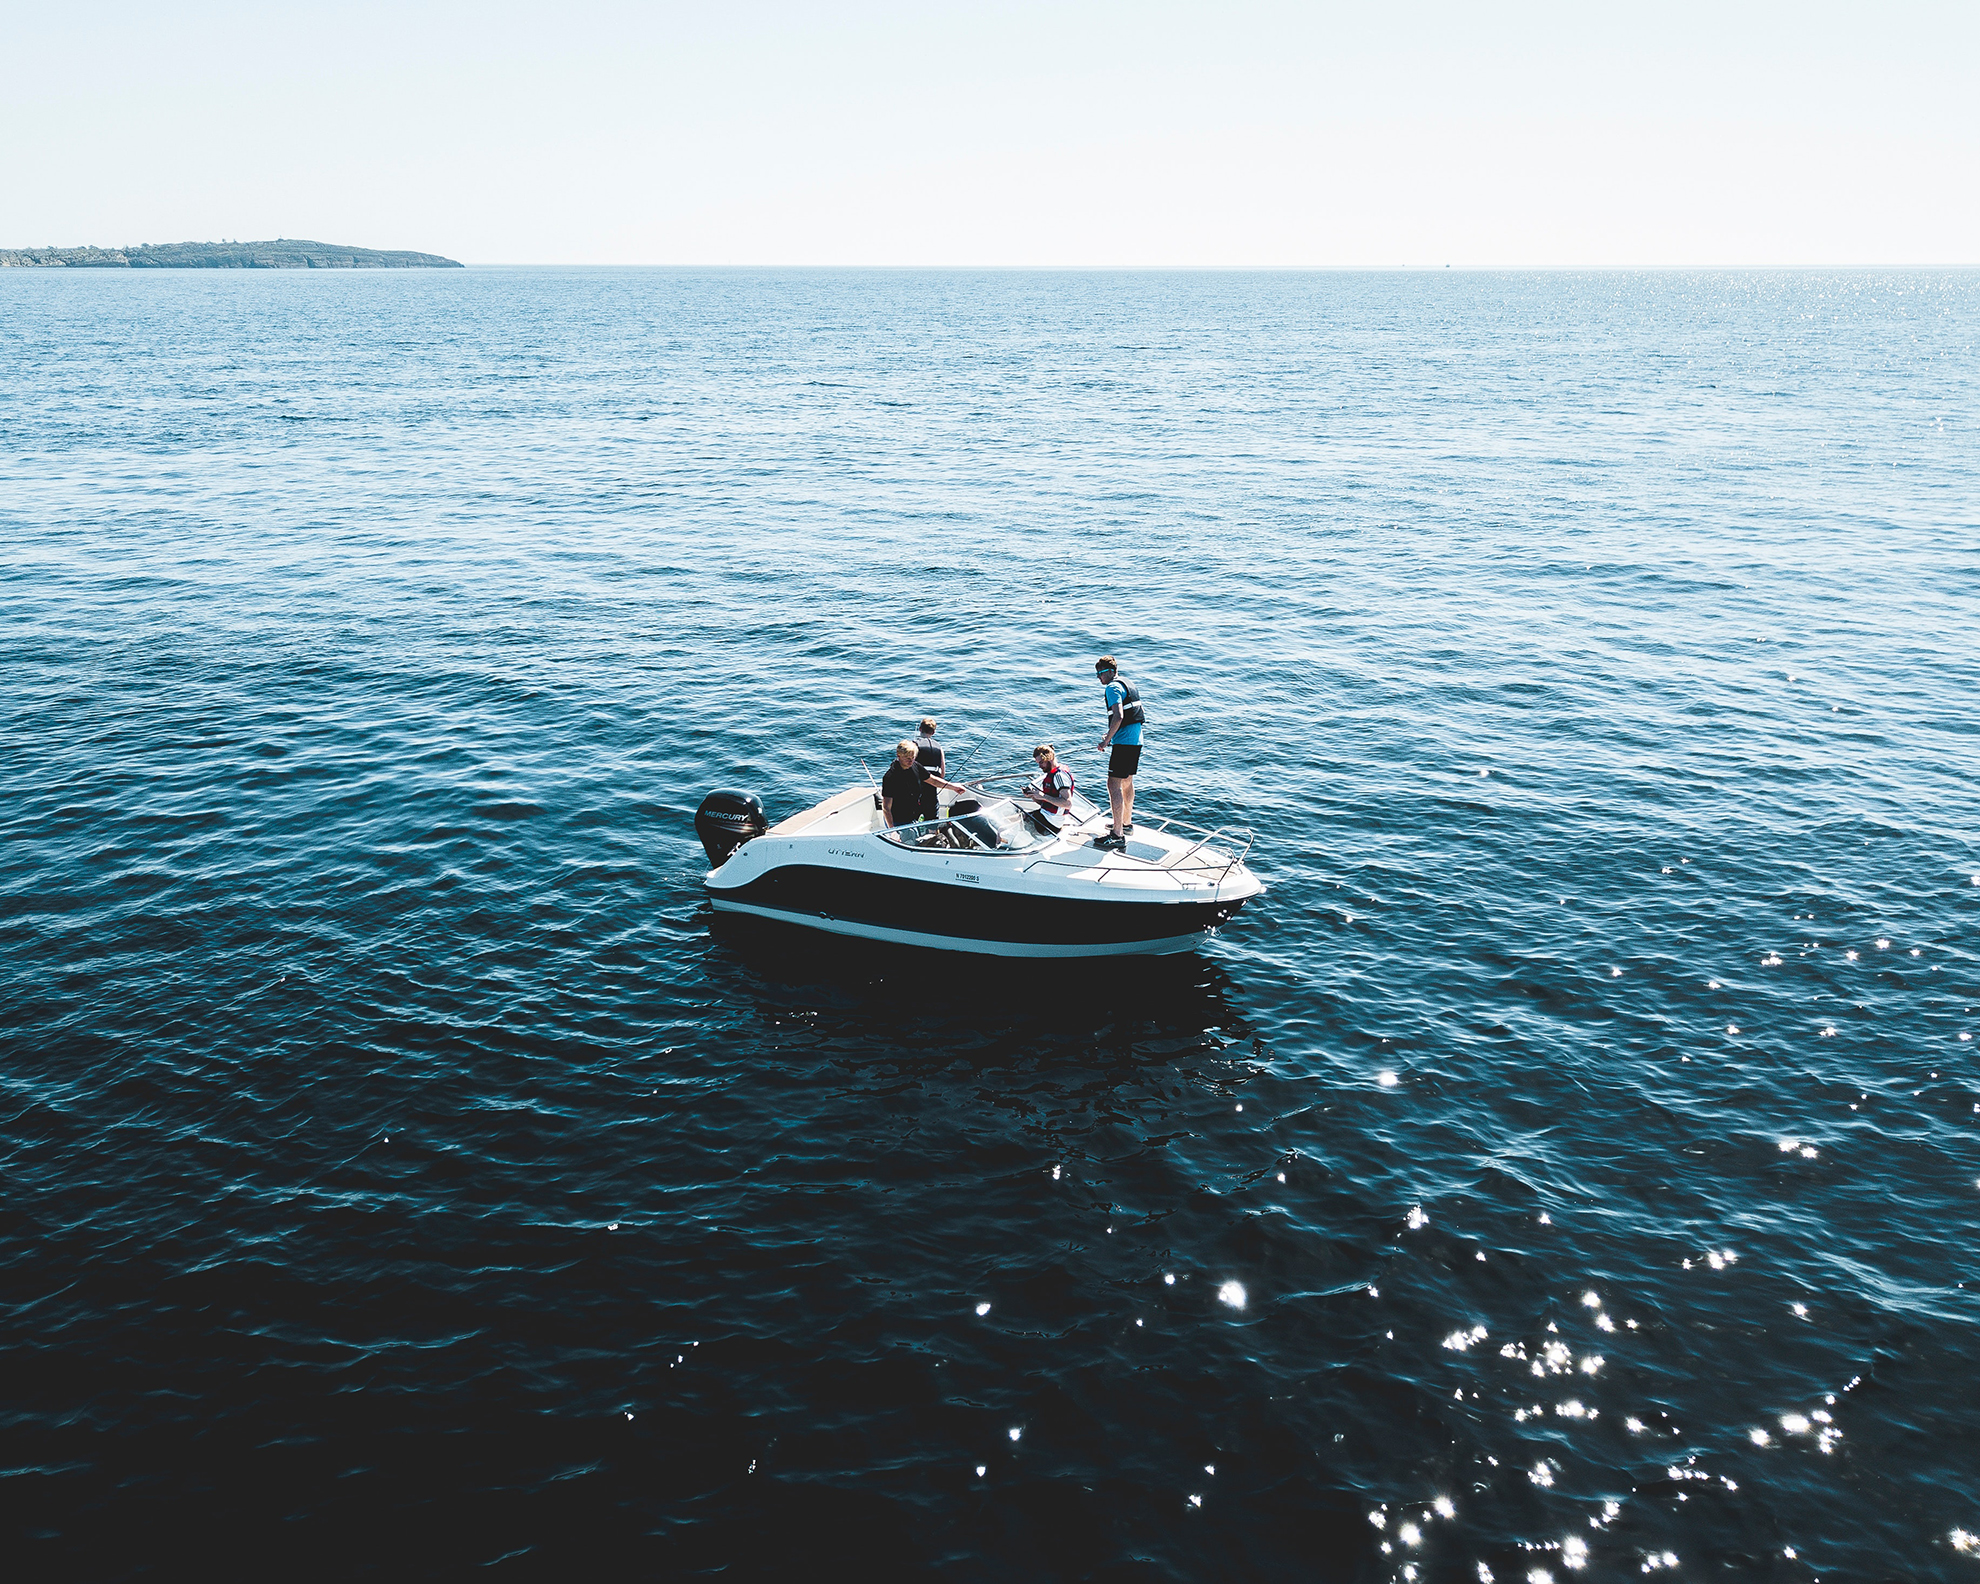 Three people on a white speedboat in a summer day.